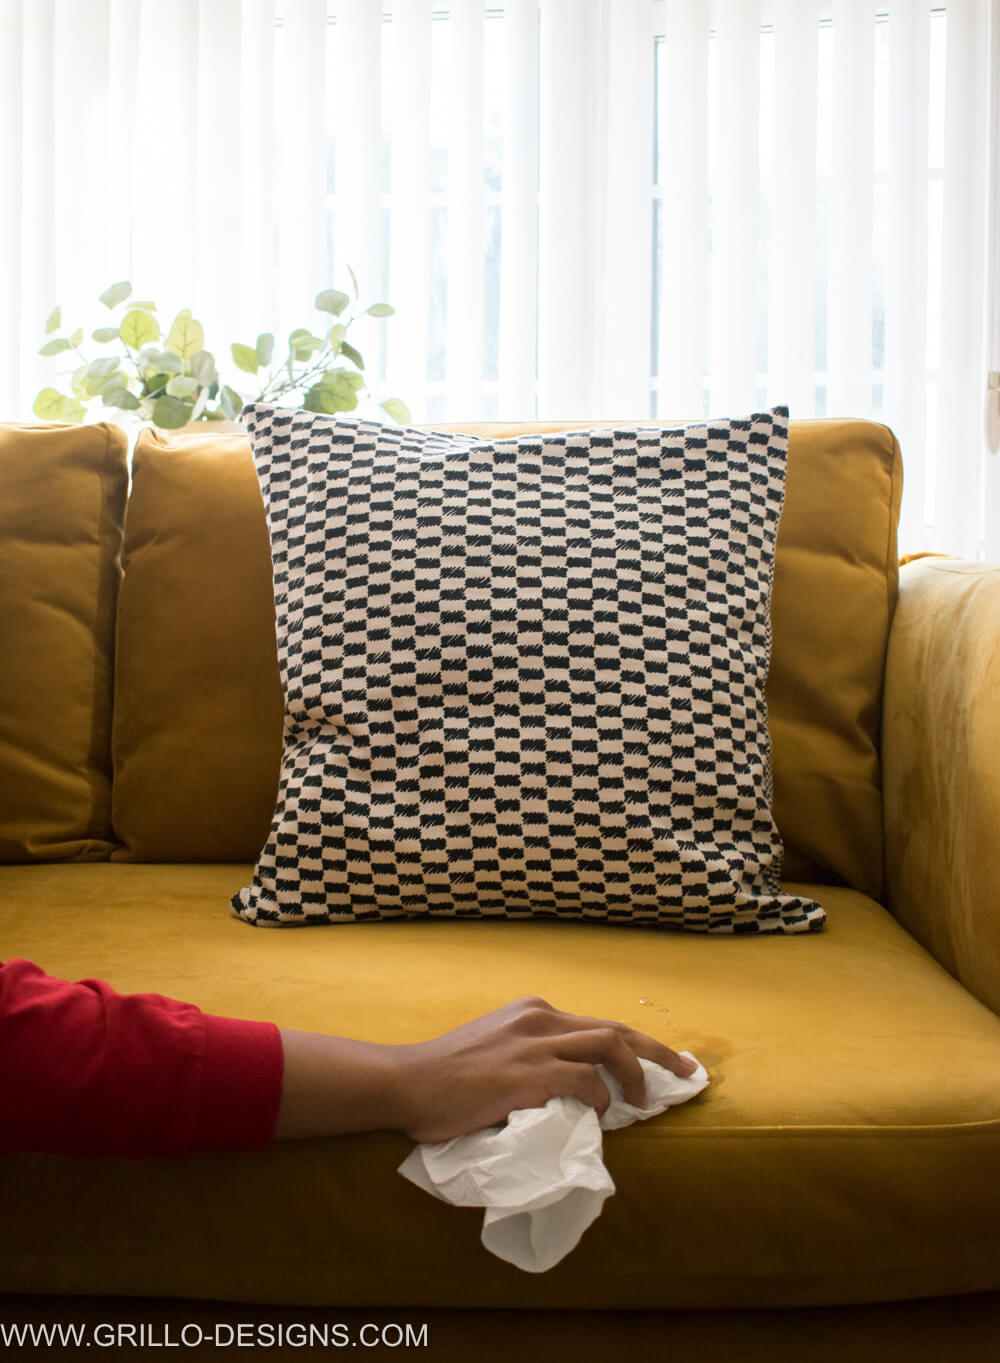 How to blot stains on a velvet sofa / grillo designs